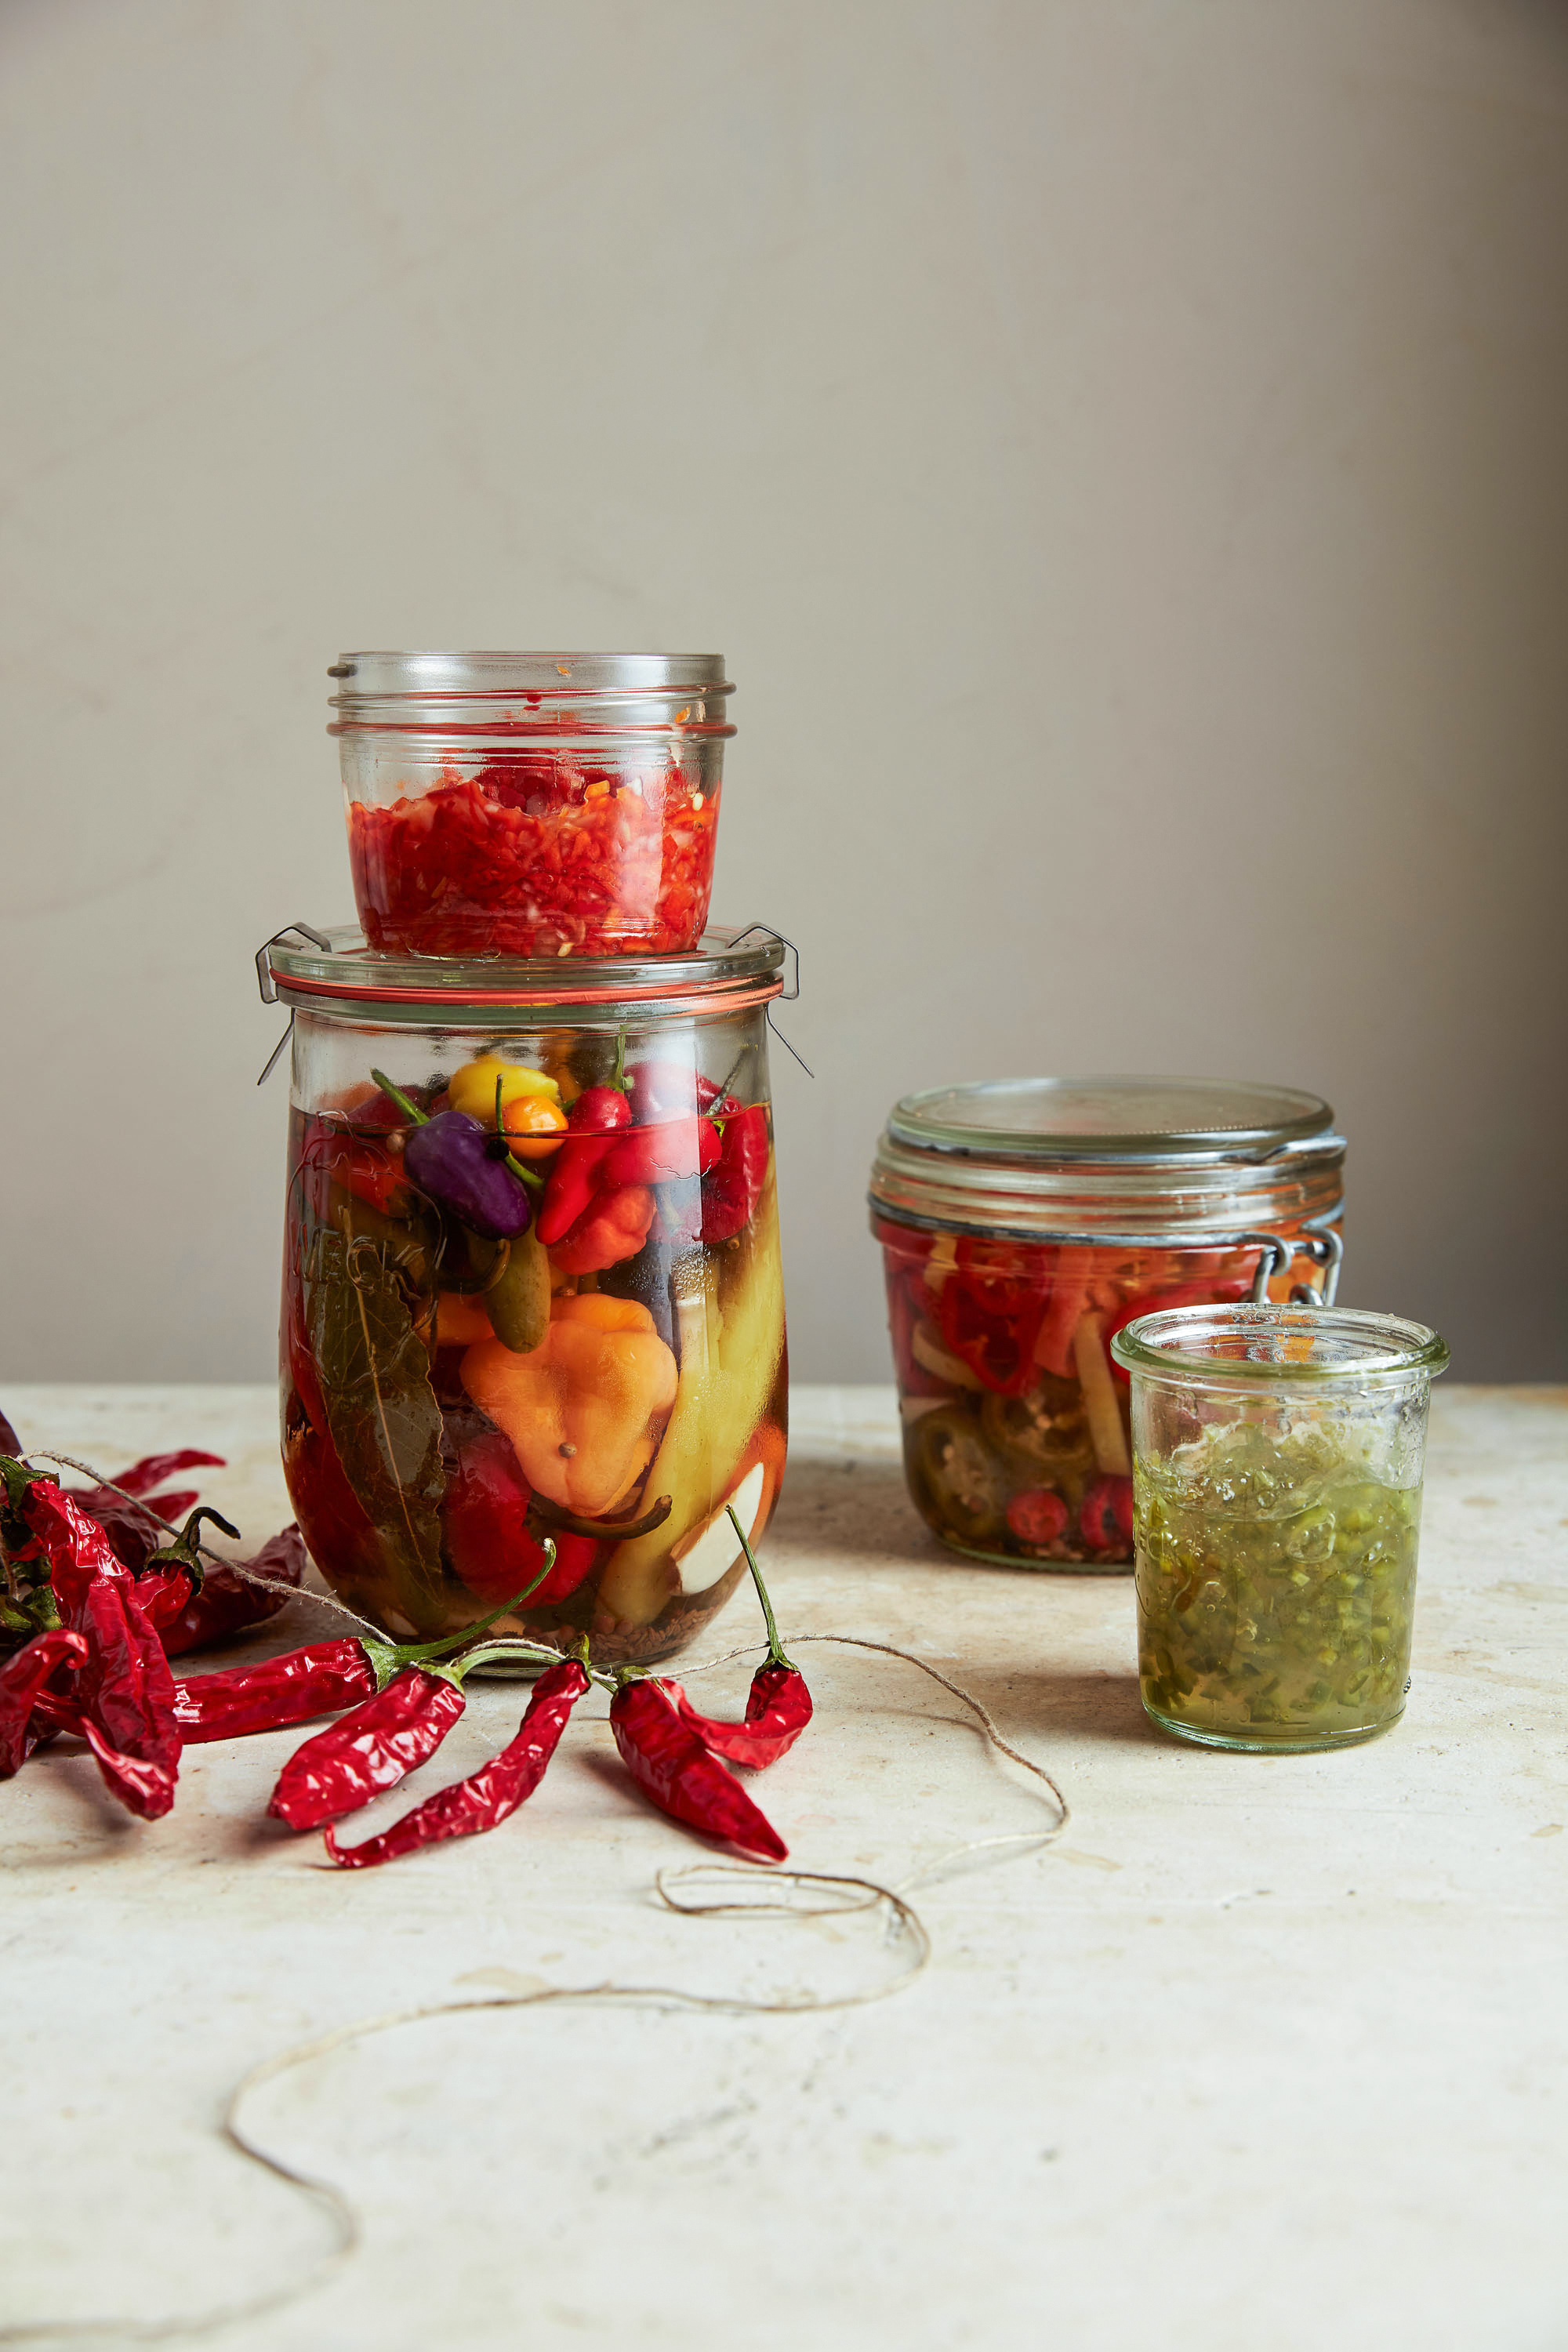 Hot Red-Pepper Relish